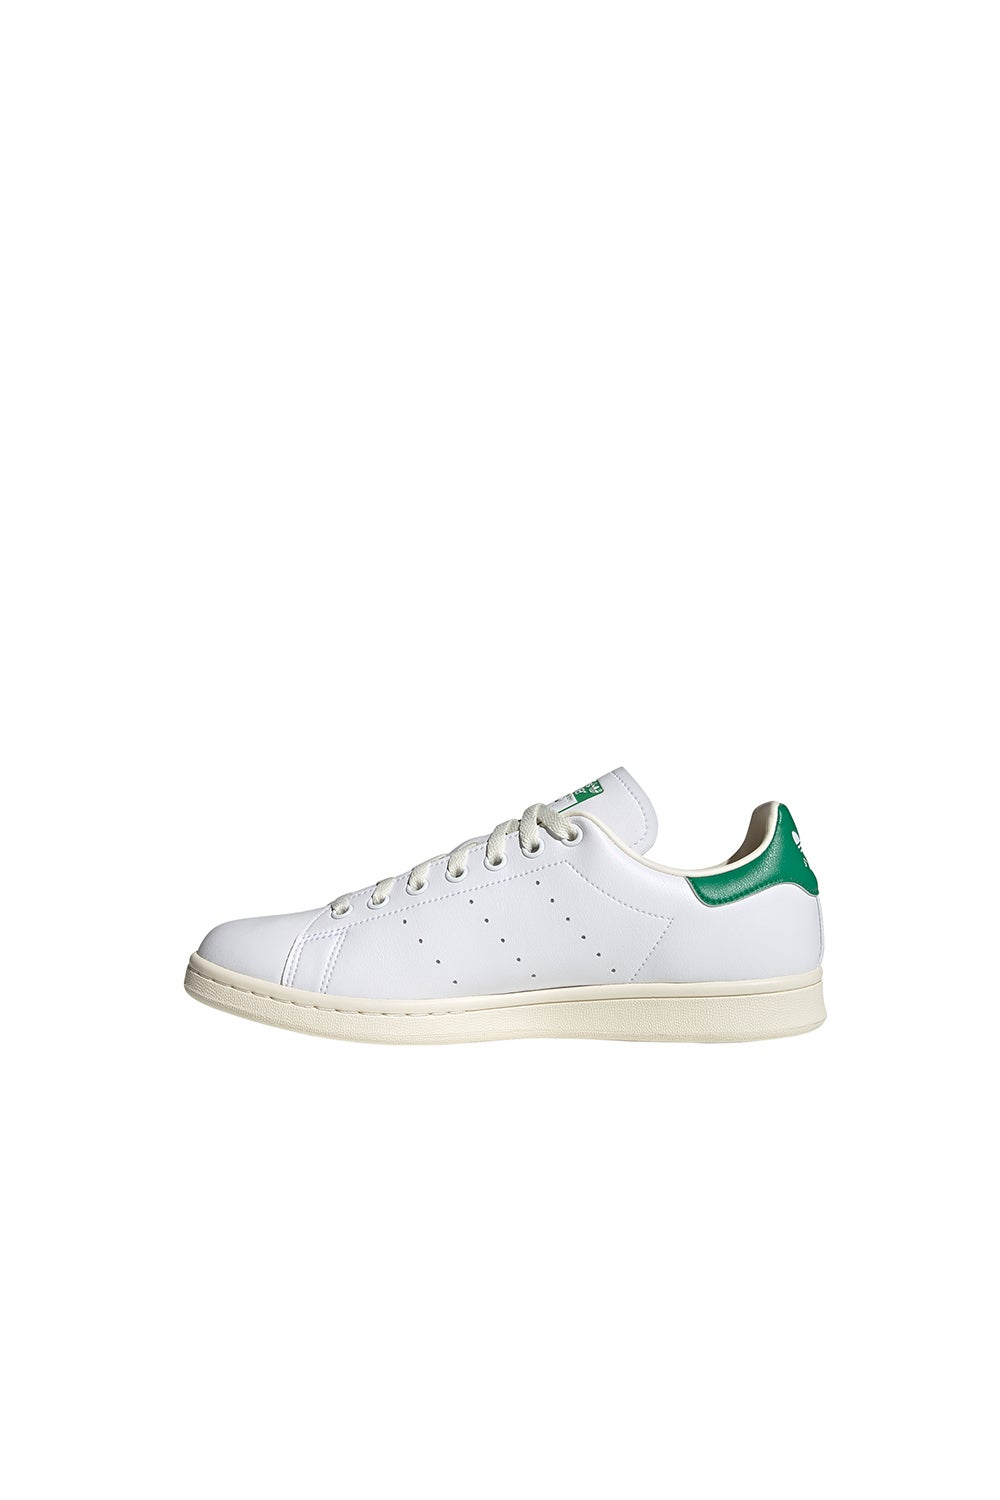 adidas Stan Smith Cream White/Cloud White/Collegiate Navy